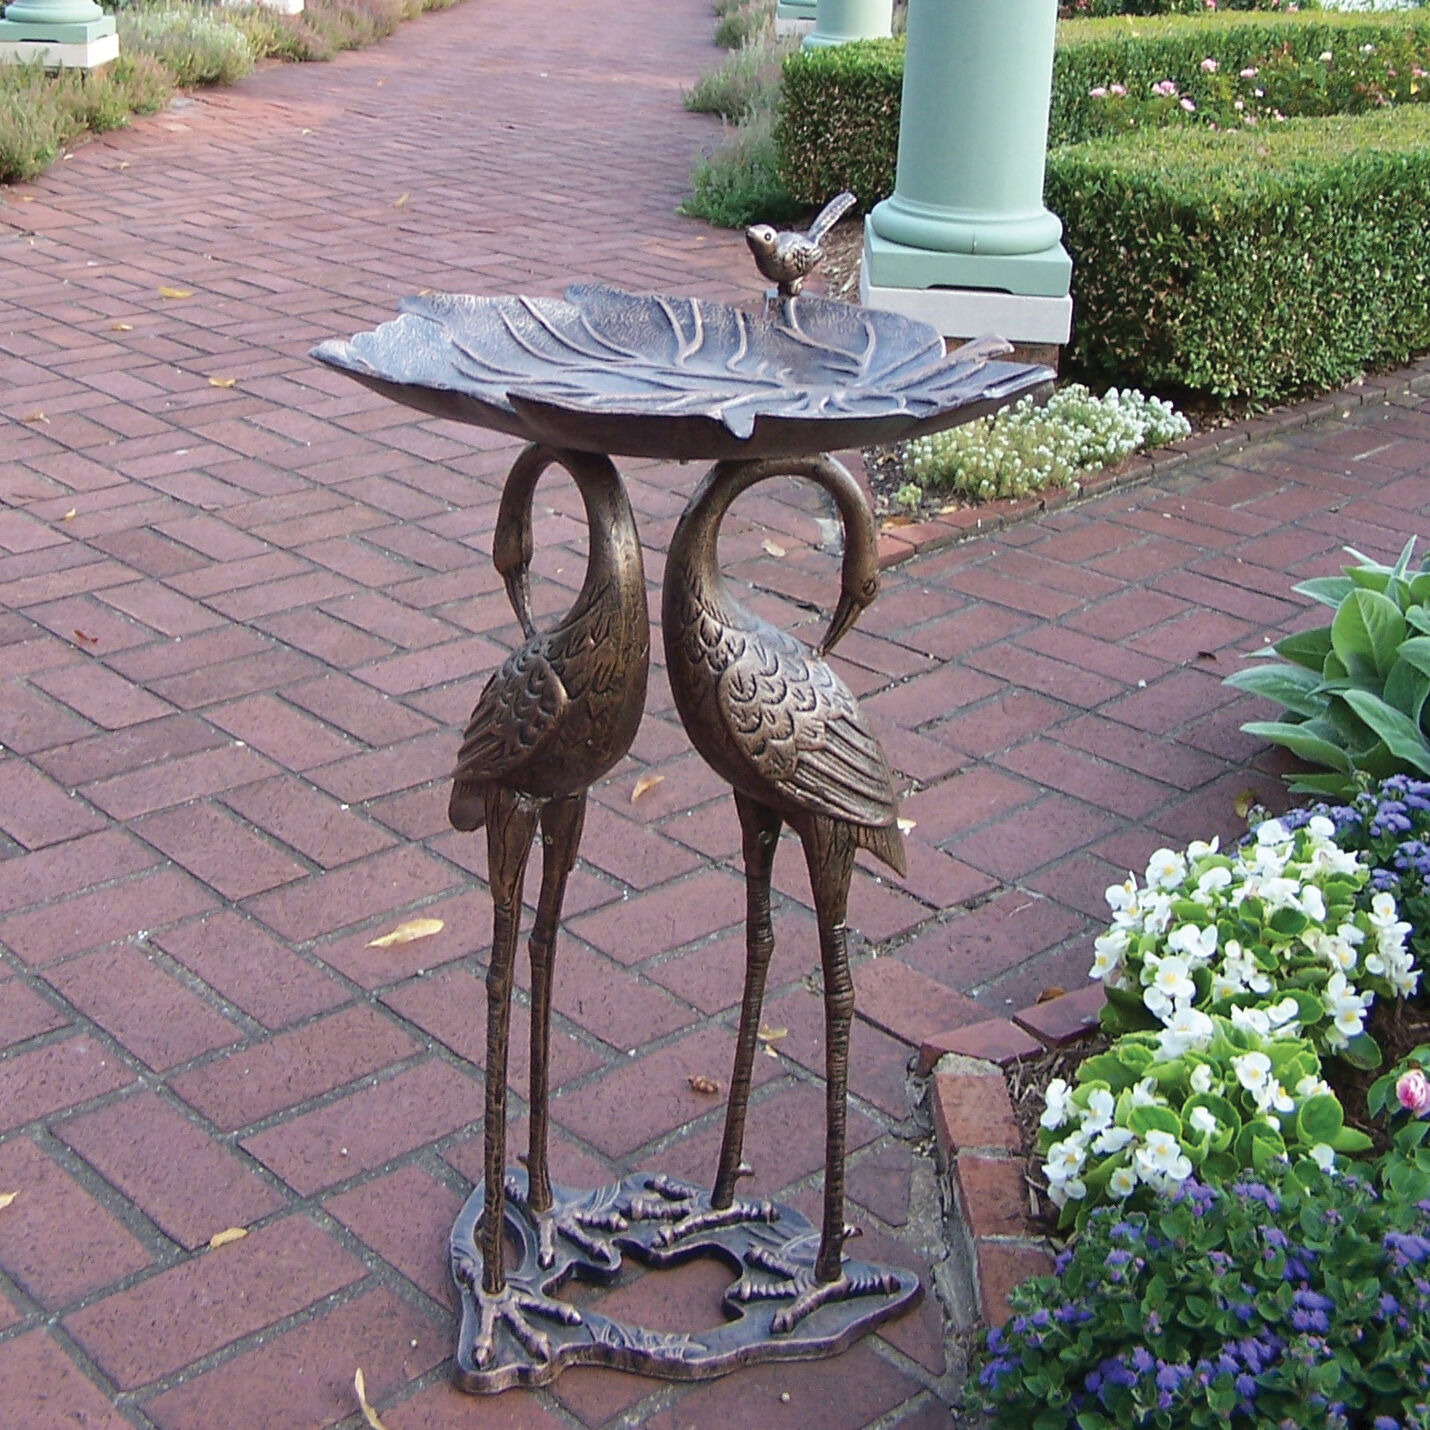 Bird Baths Bird Bath Unique Bird Baths Decorative Bird Baths Hanging Bird